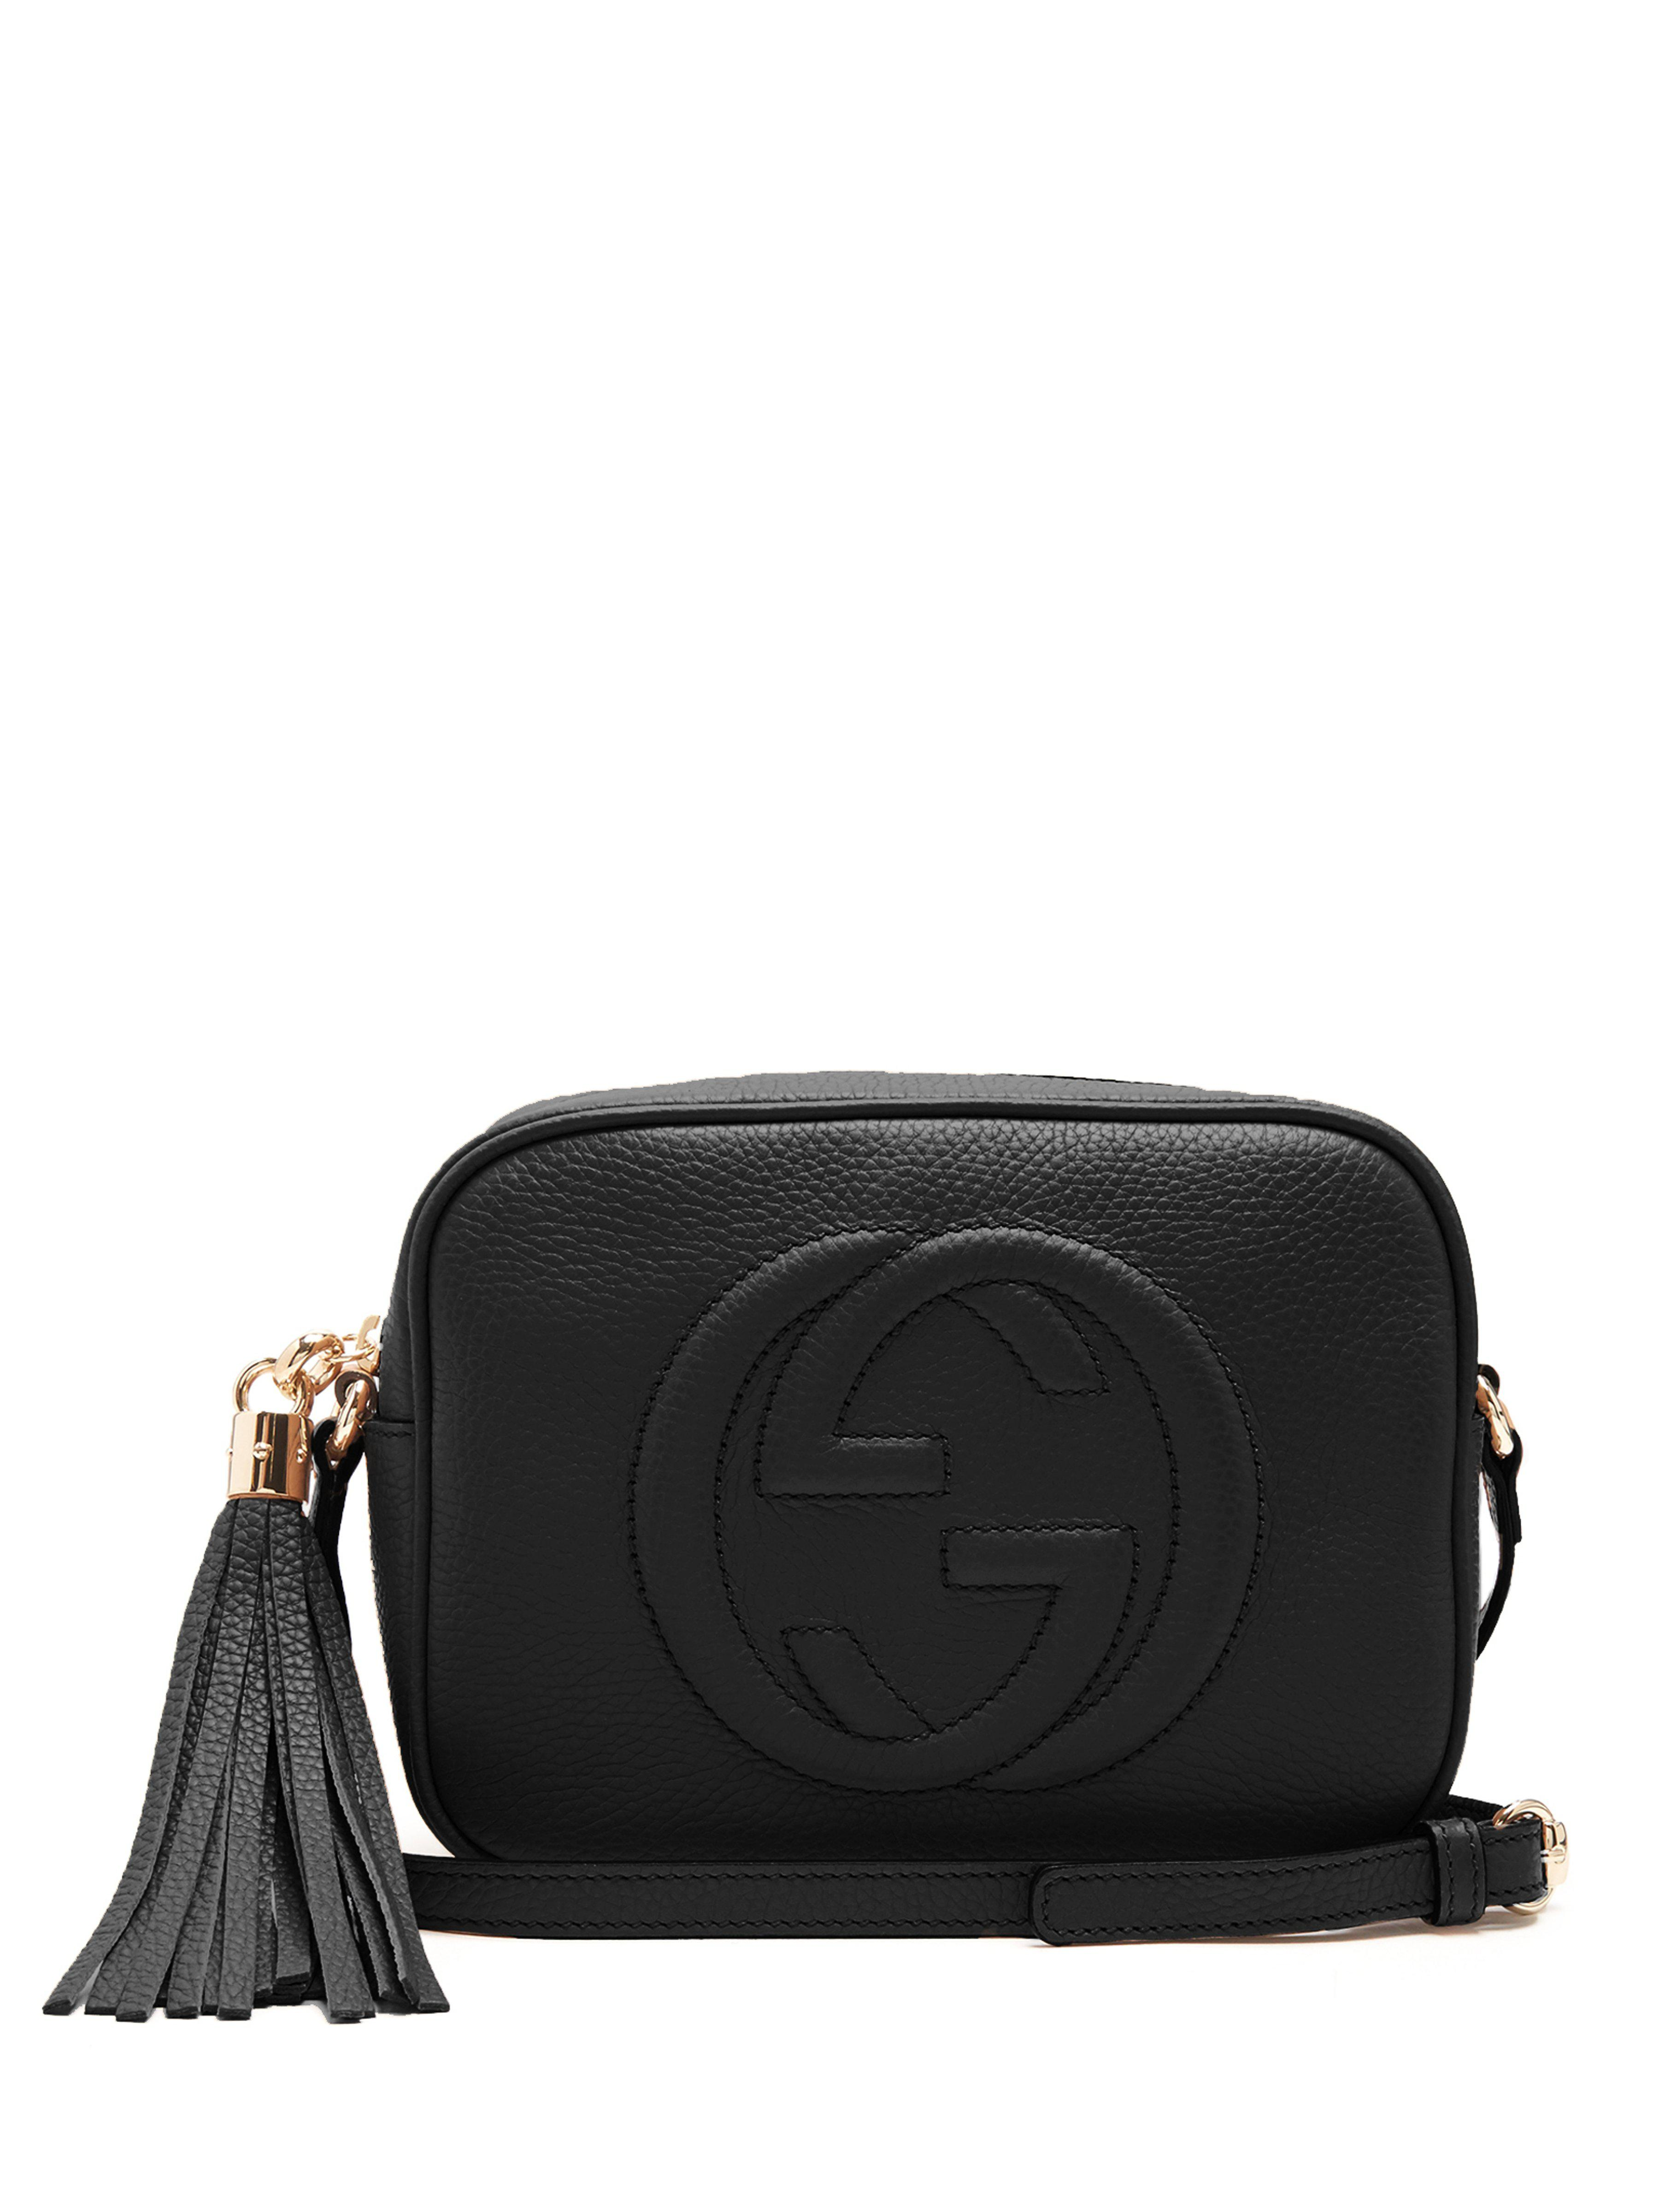 6b653b9ff70d Gucci Soho Disco Leather Shoulder Bag in Black - Save 11% - Lyst